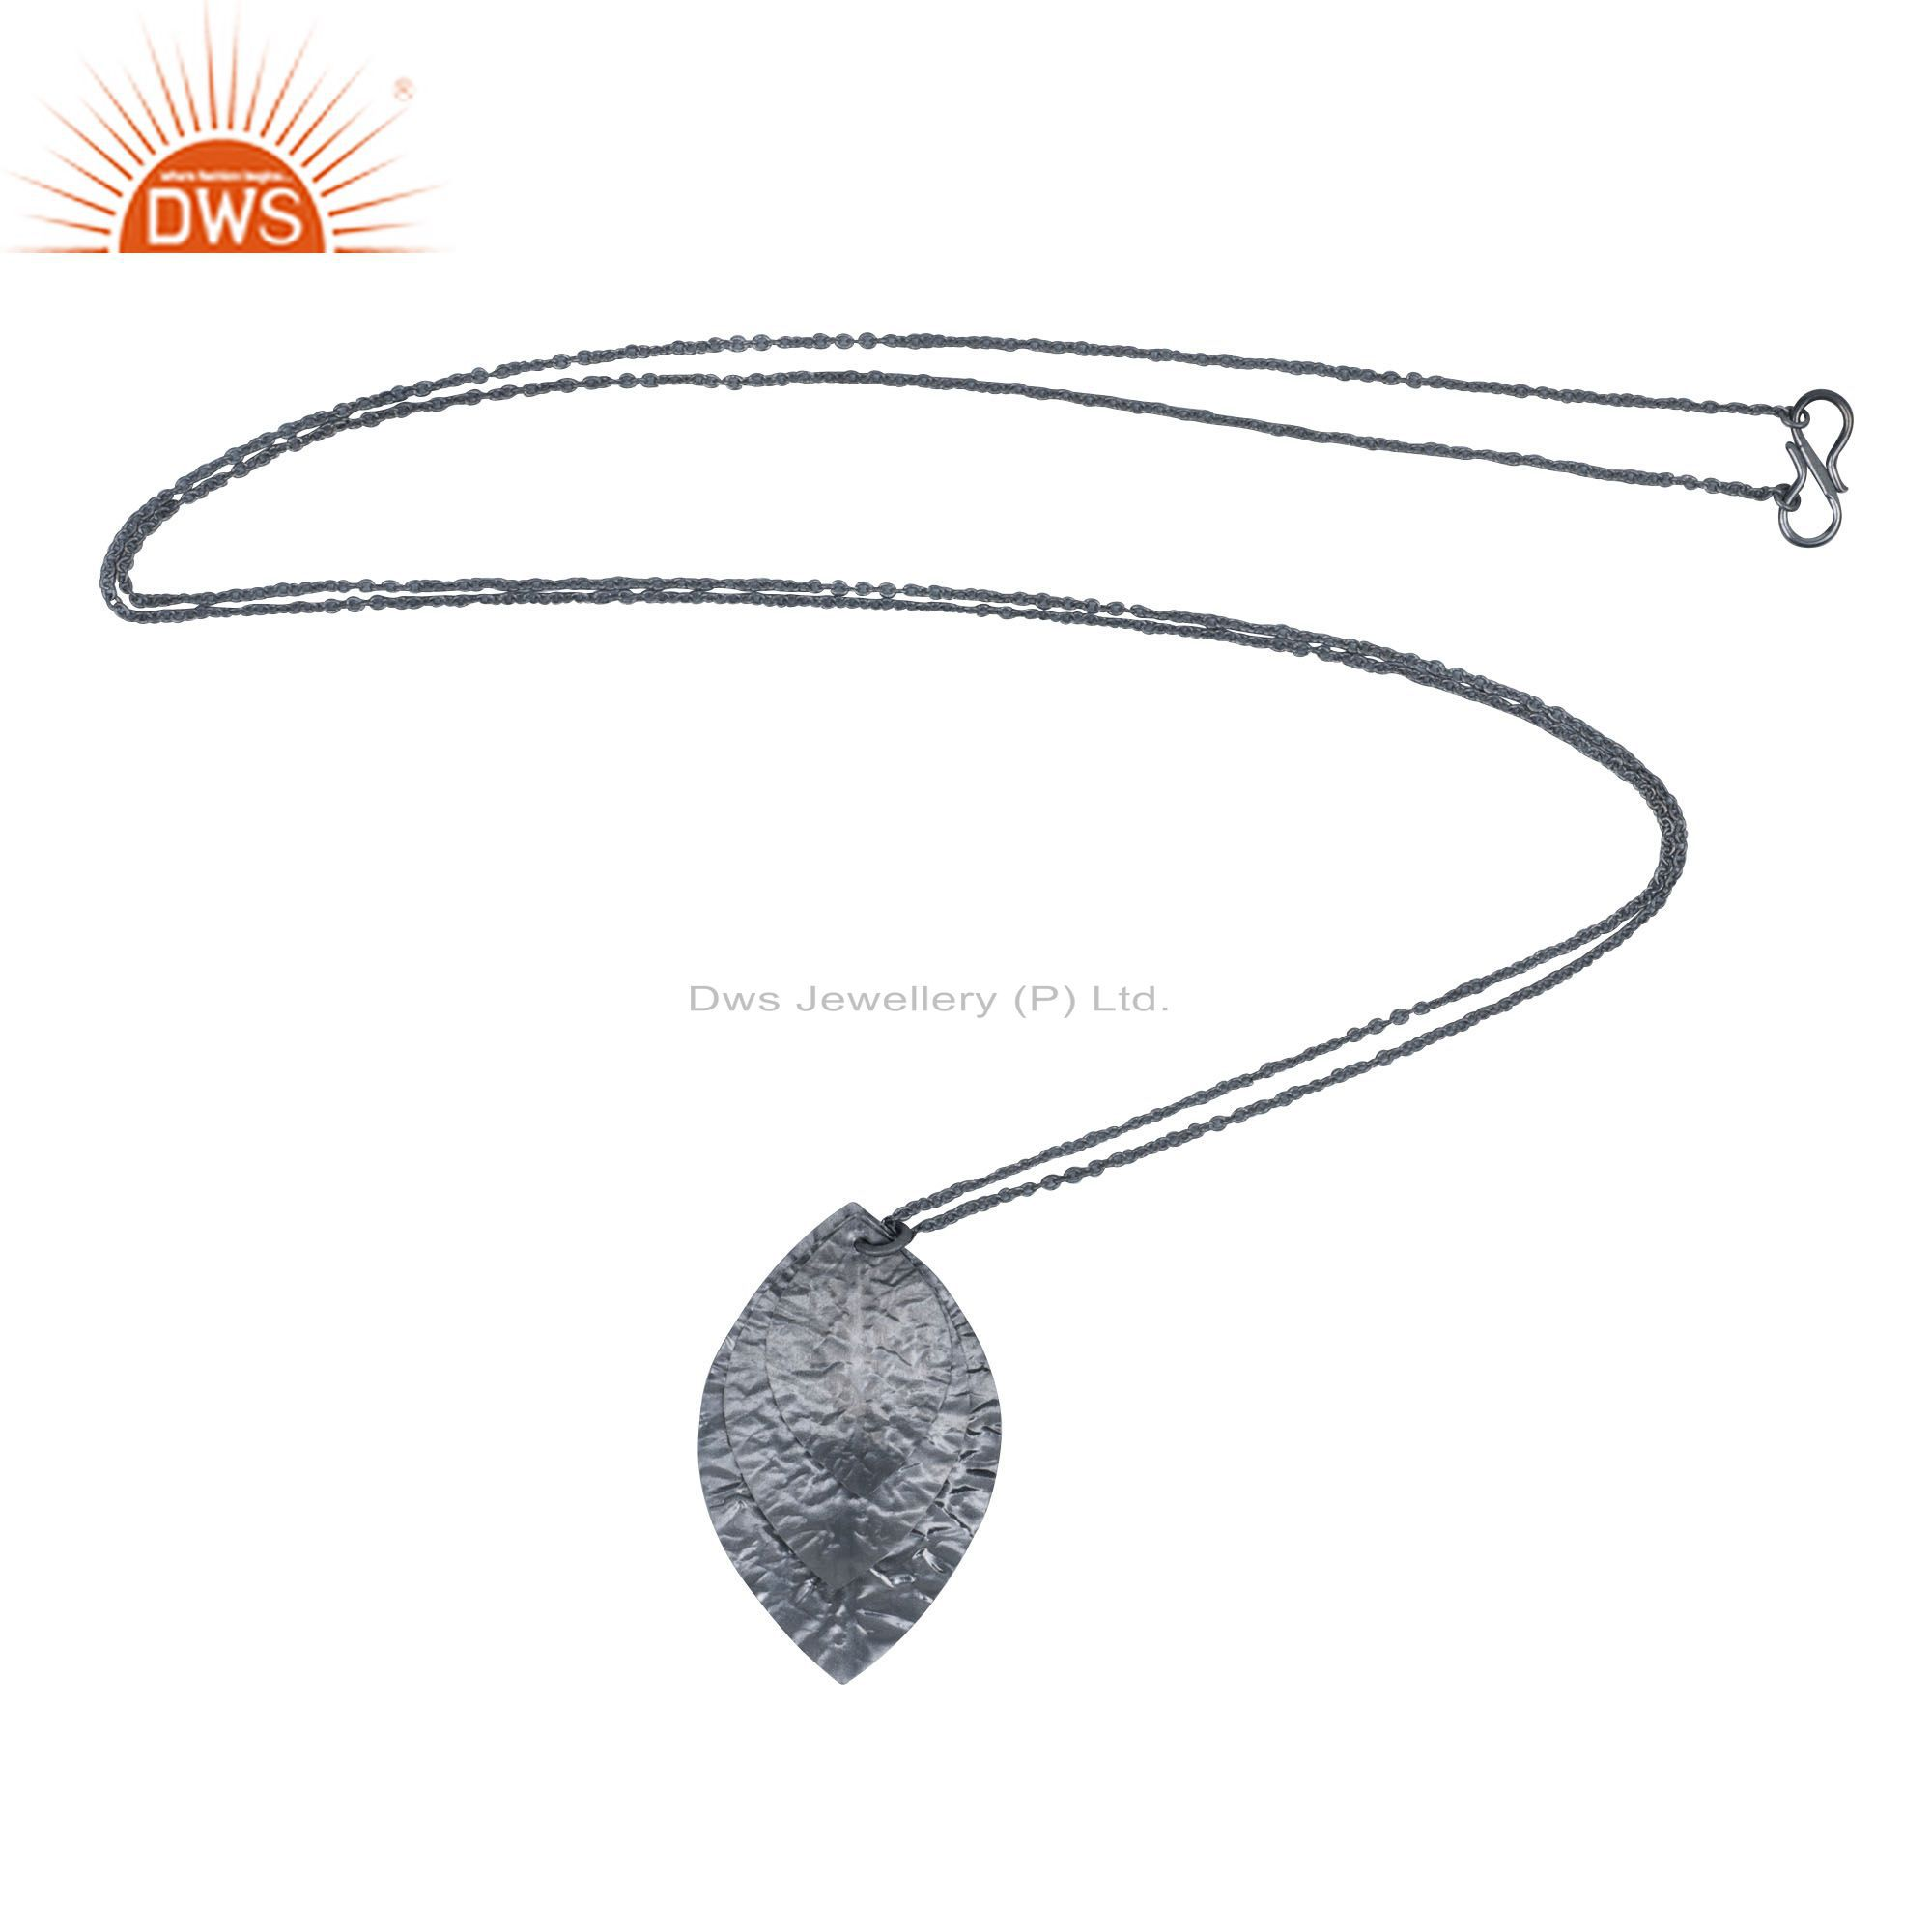 Oxidized solid sterling silver three petal pendant with chain necklace